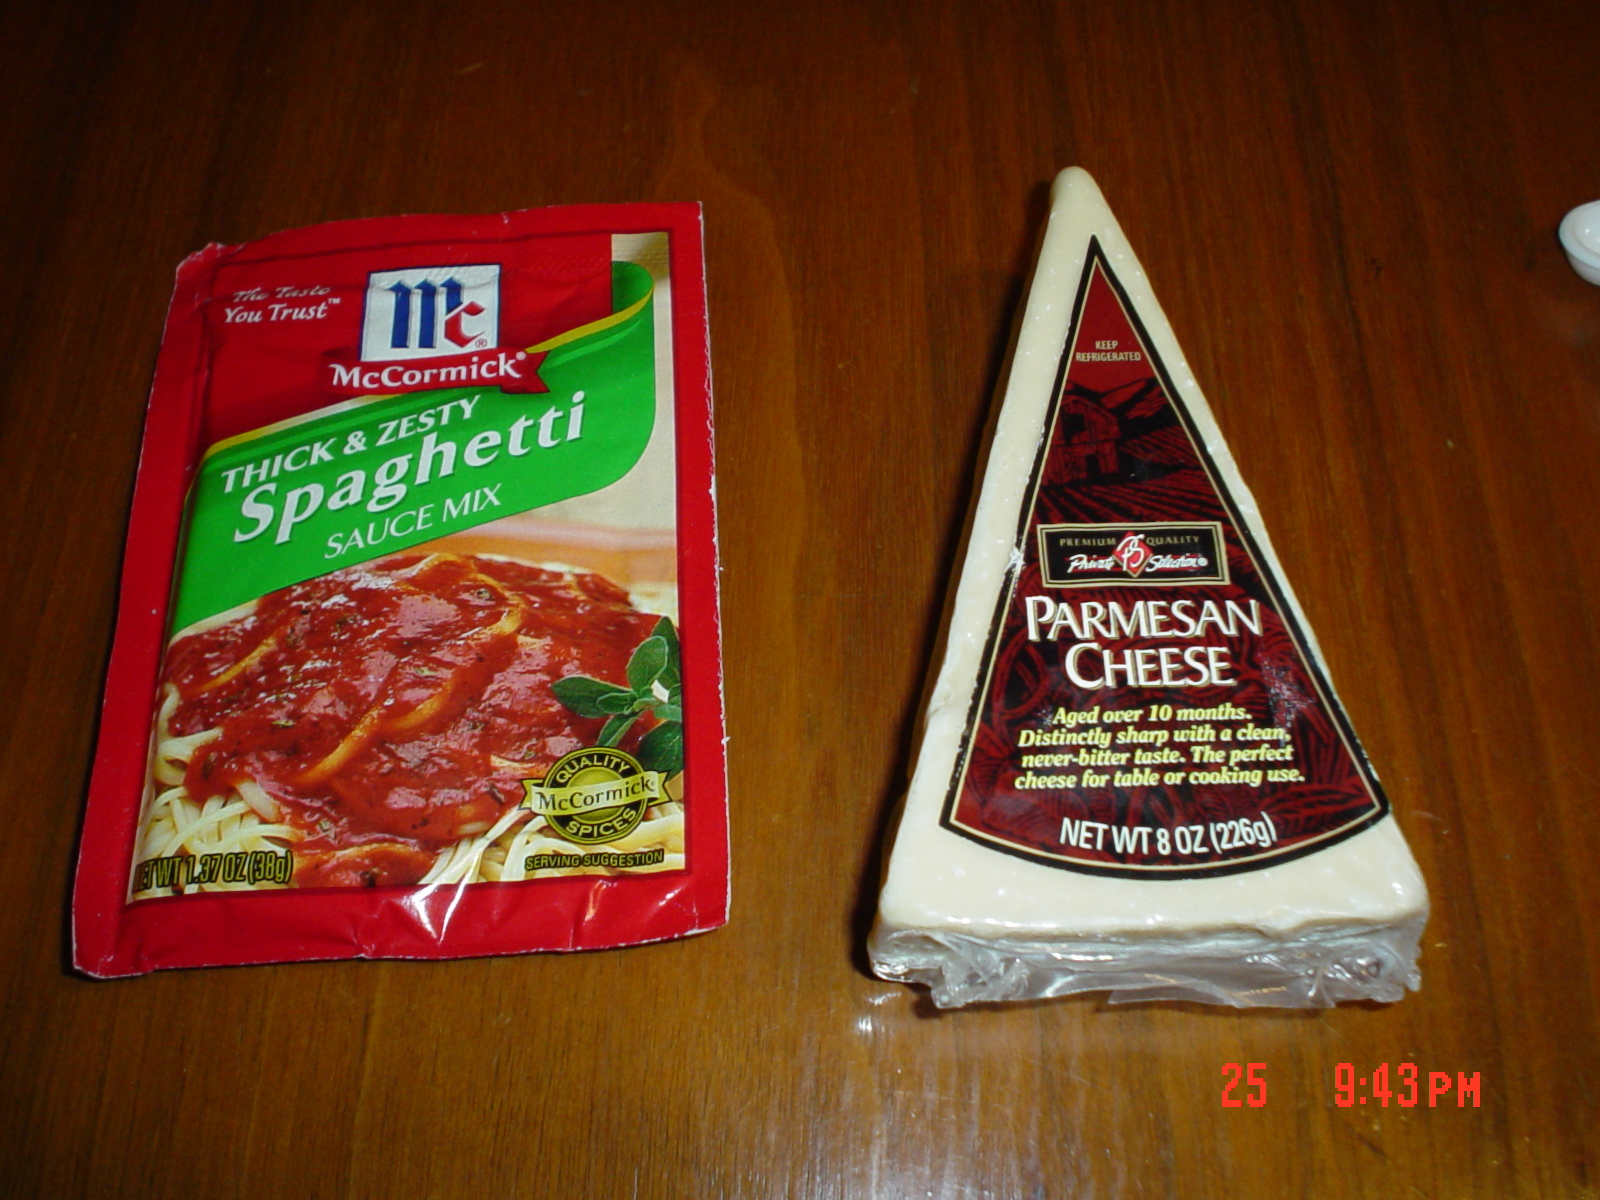 The cheese on the right can make a marked improvement to the packet on the left.